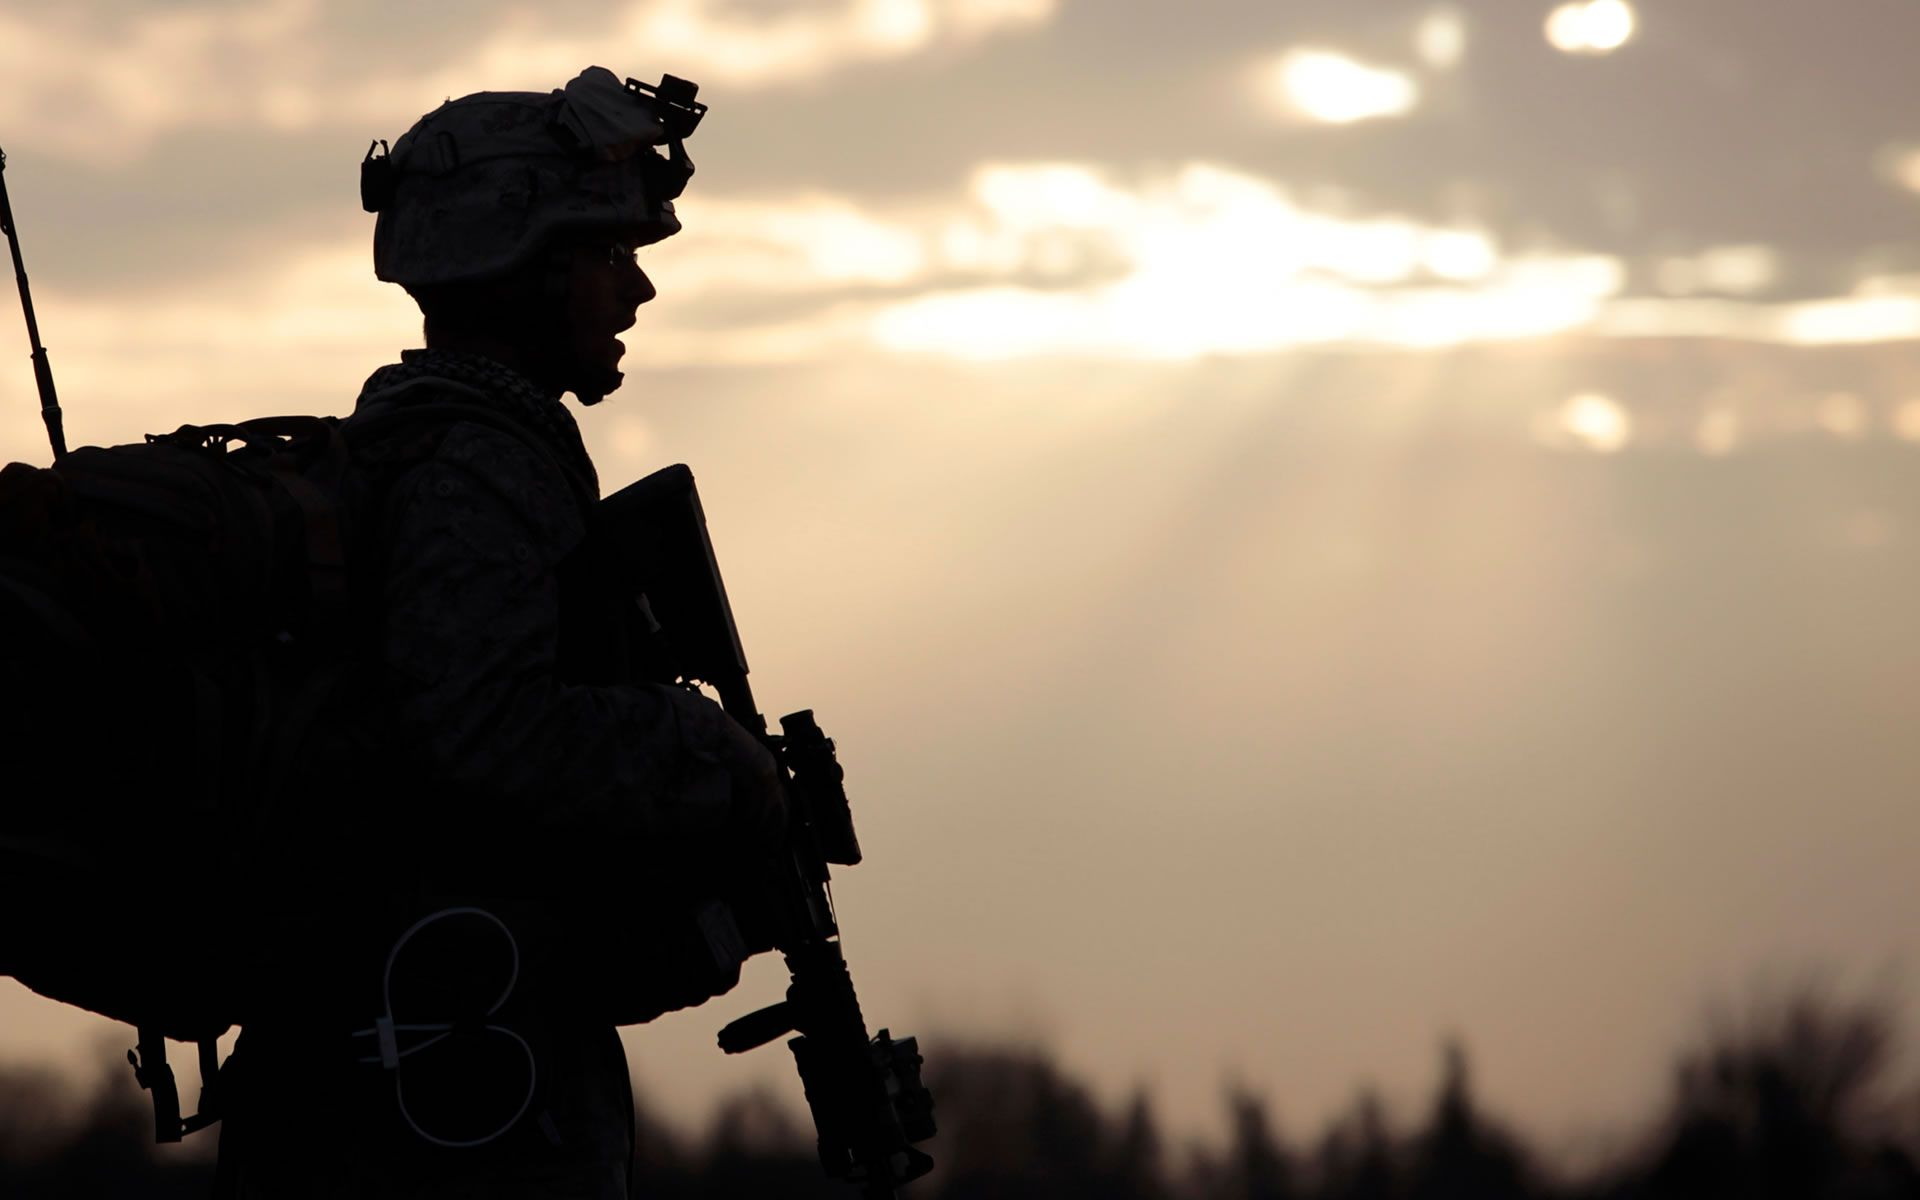 American Soldier Wallpapers Top Free American Soldier